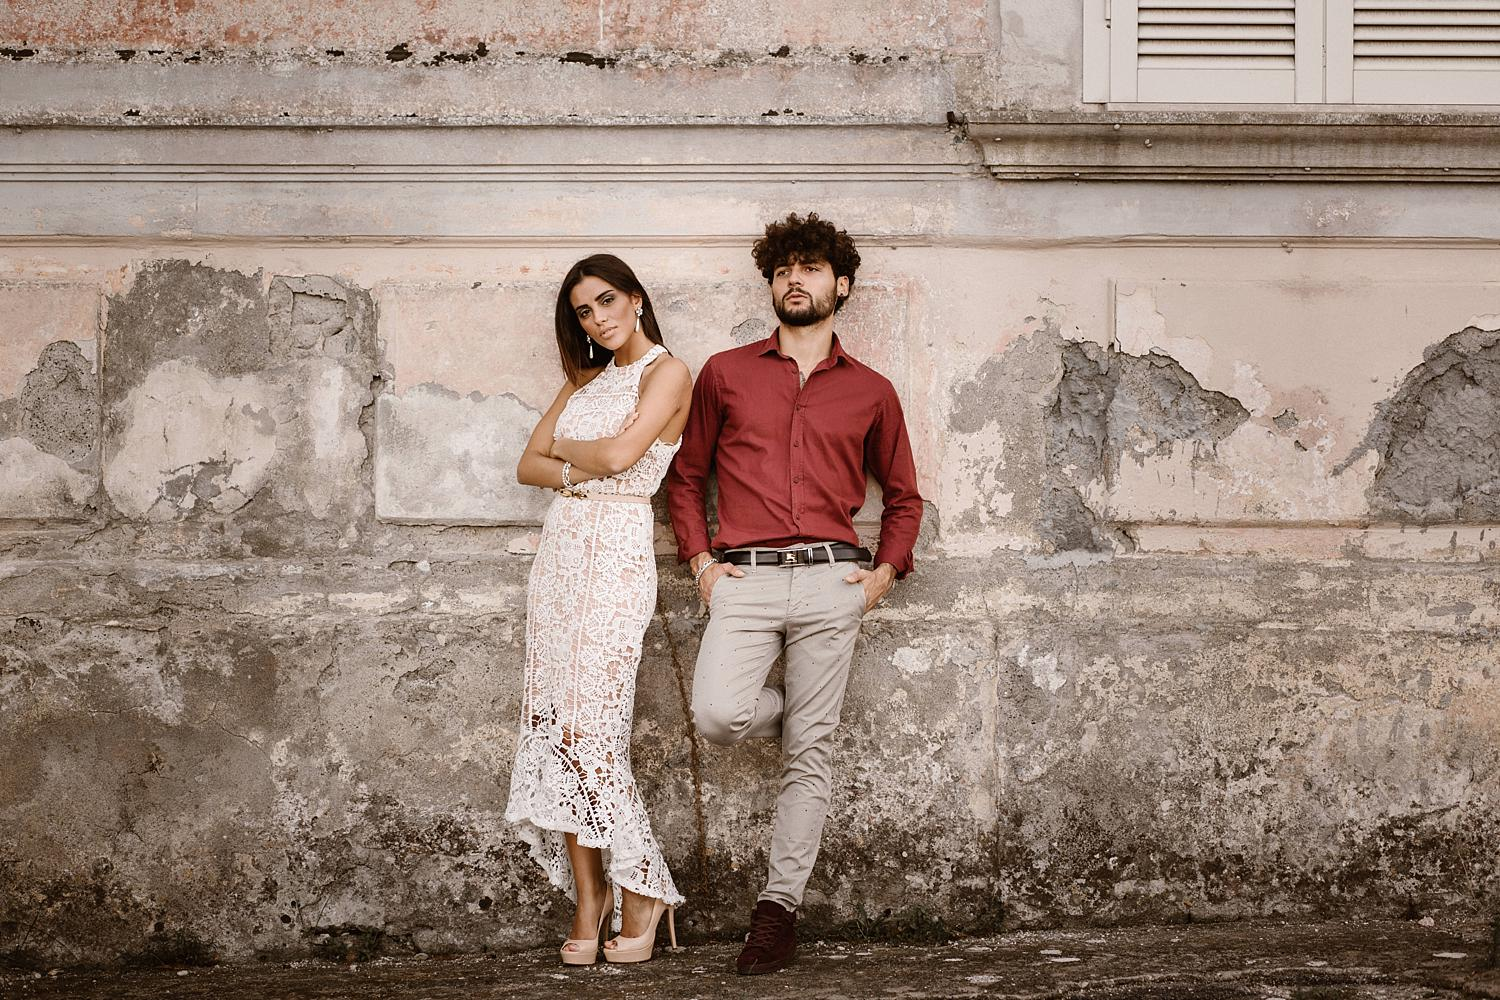 mf weddingphotographer rome 66 - Marika & Franklin - Intimate Session in Gaeta